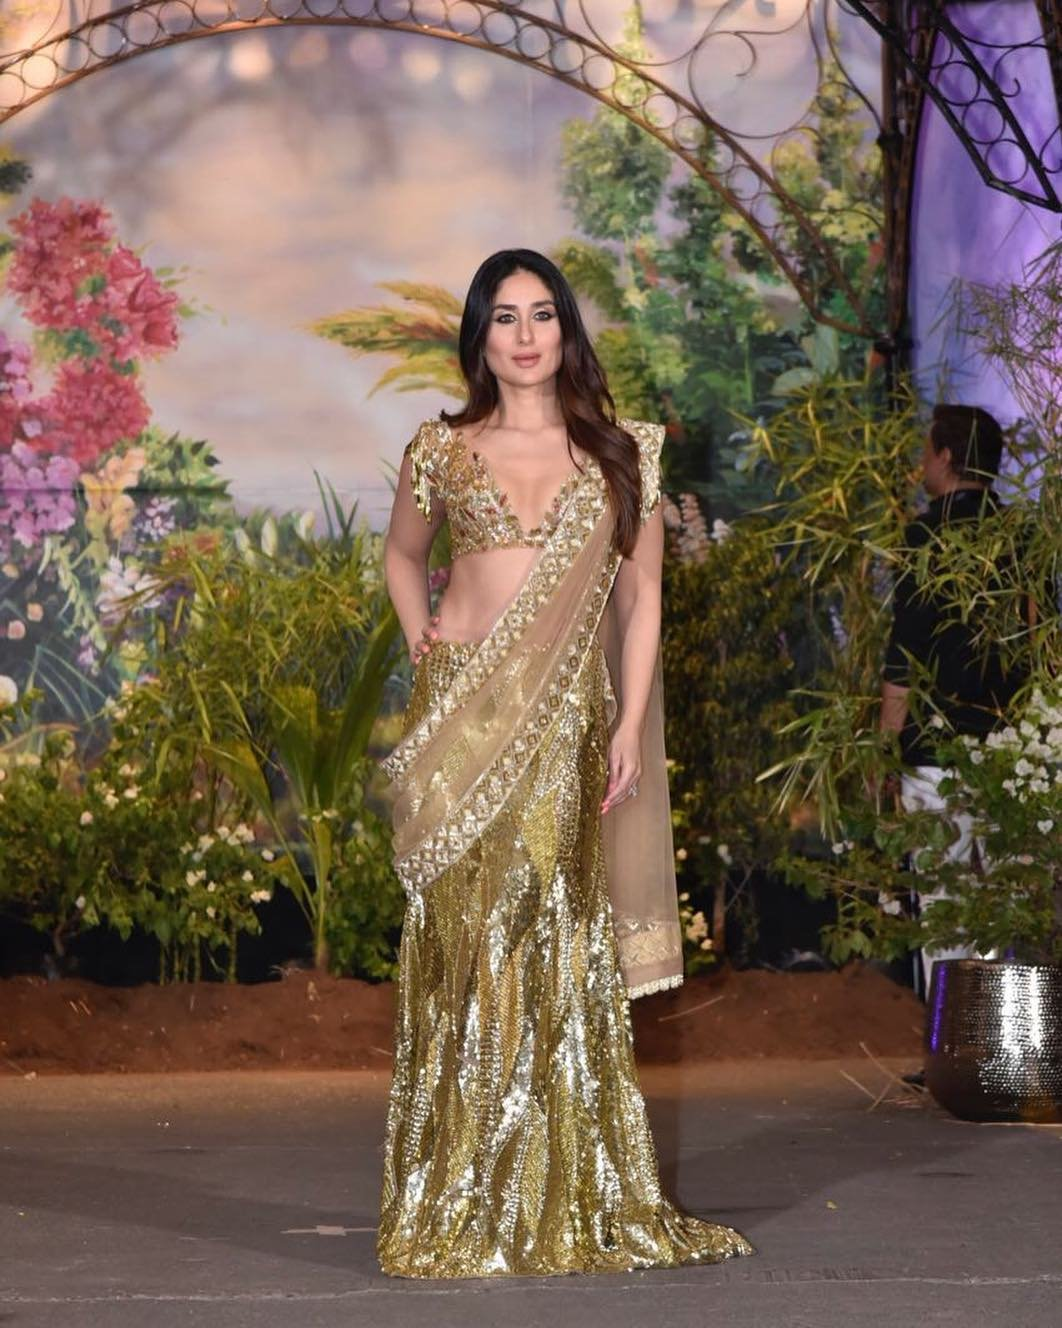 This Is How You Can Reinvent The Saree With Some Inspiration From Bollywood